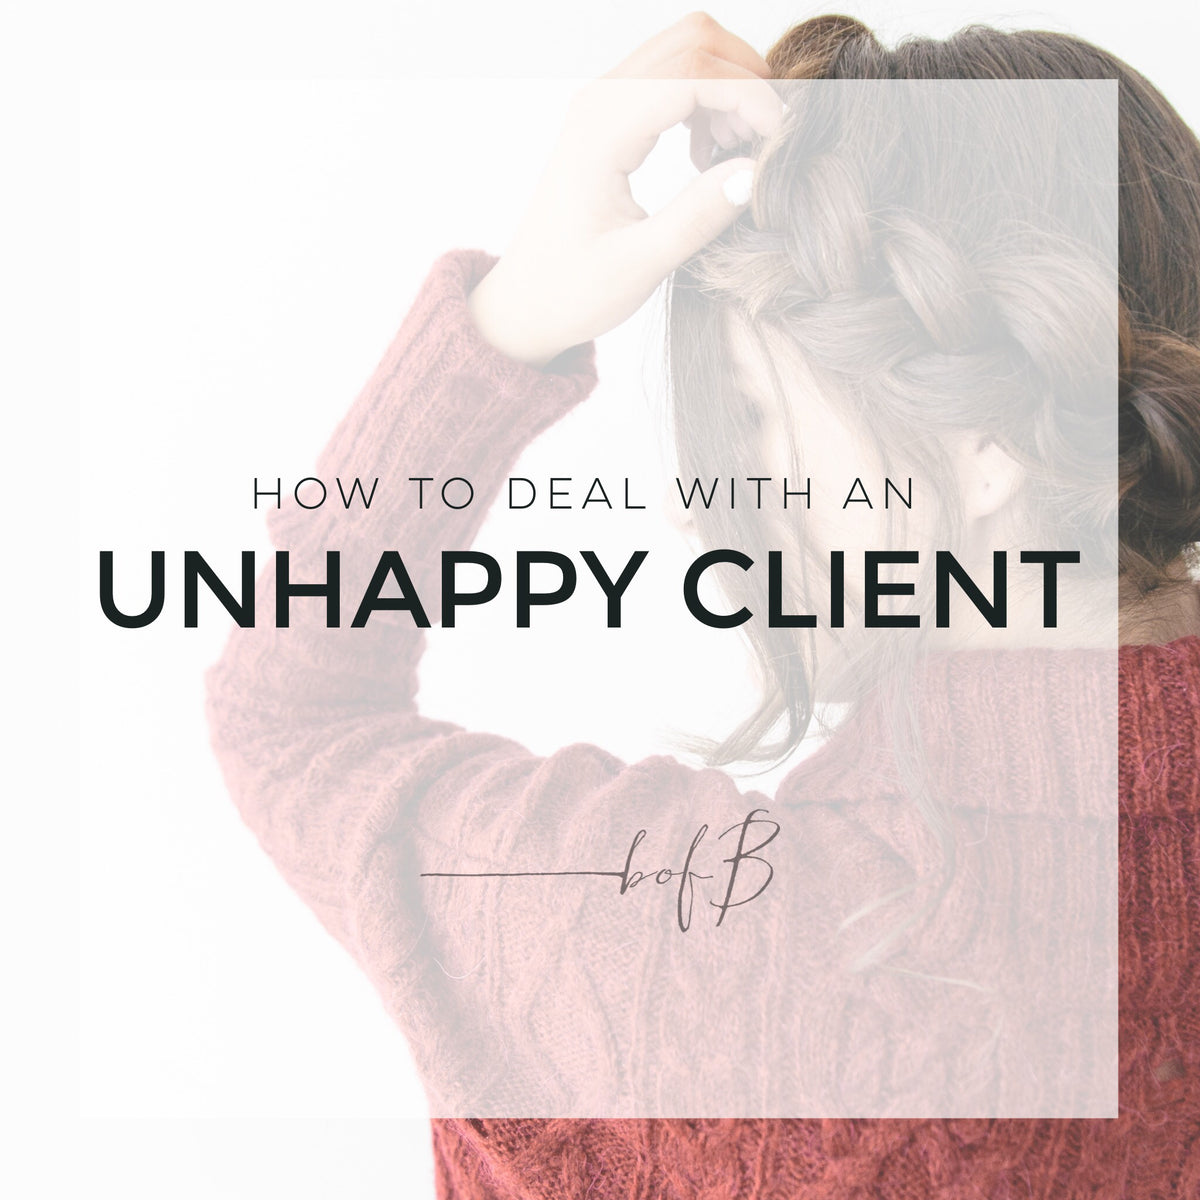 HOW TO DEAL WITH AN UNHAPPY CLIENT